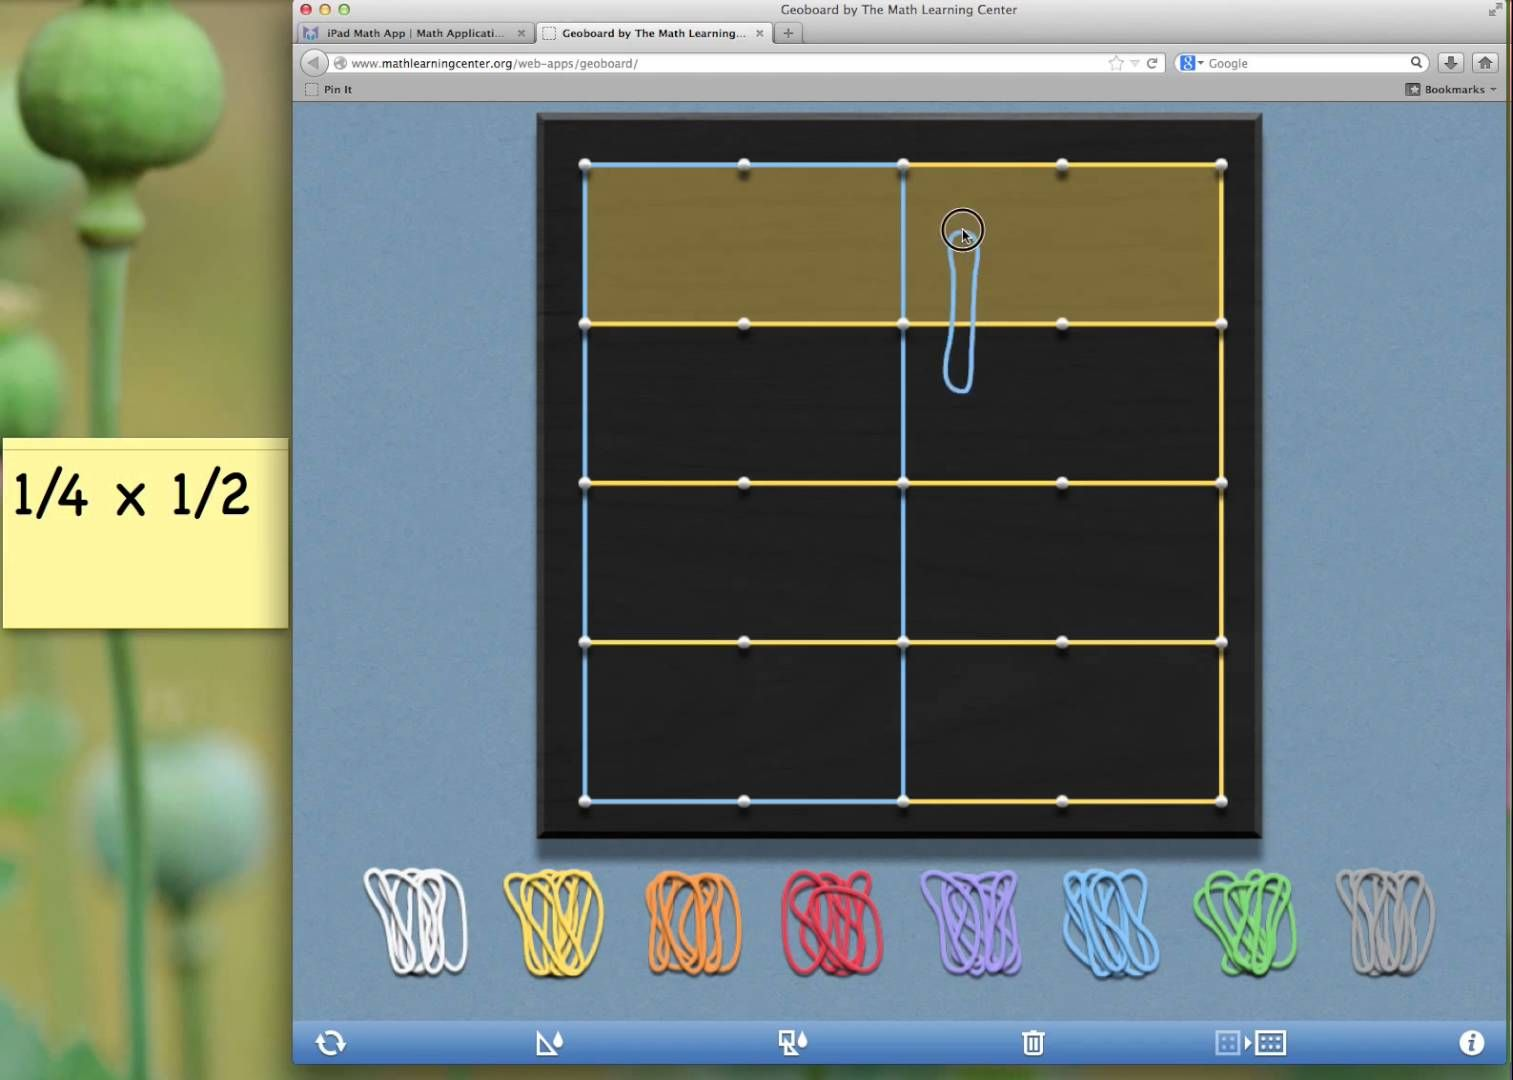 Multiplying Fractions On A Geoboard